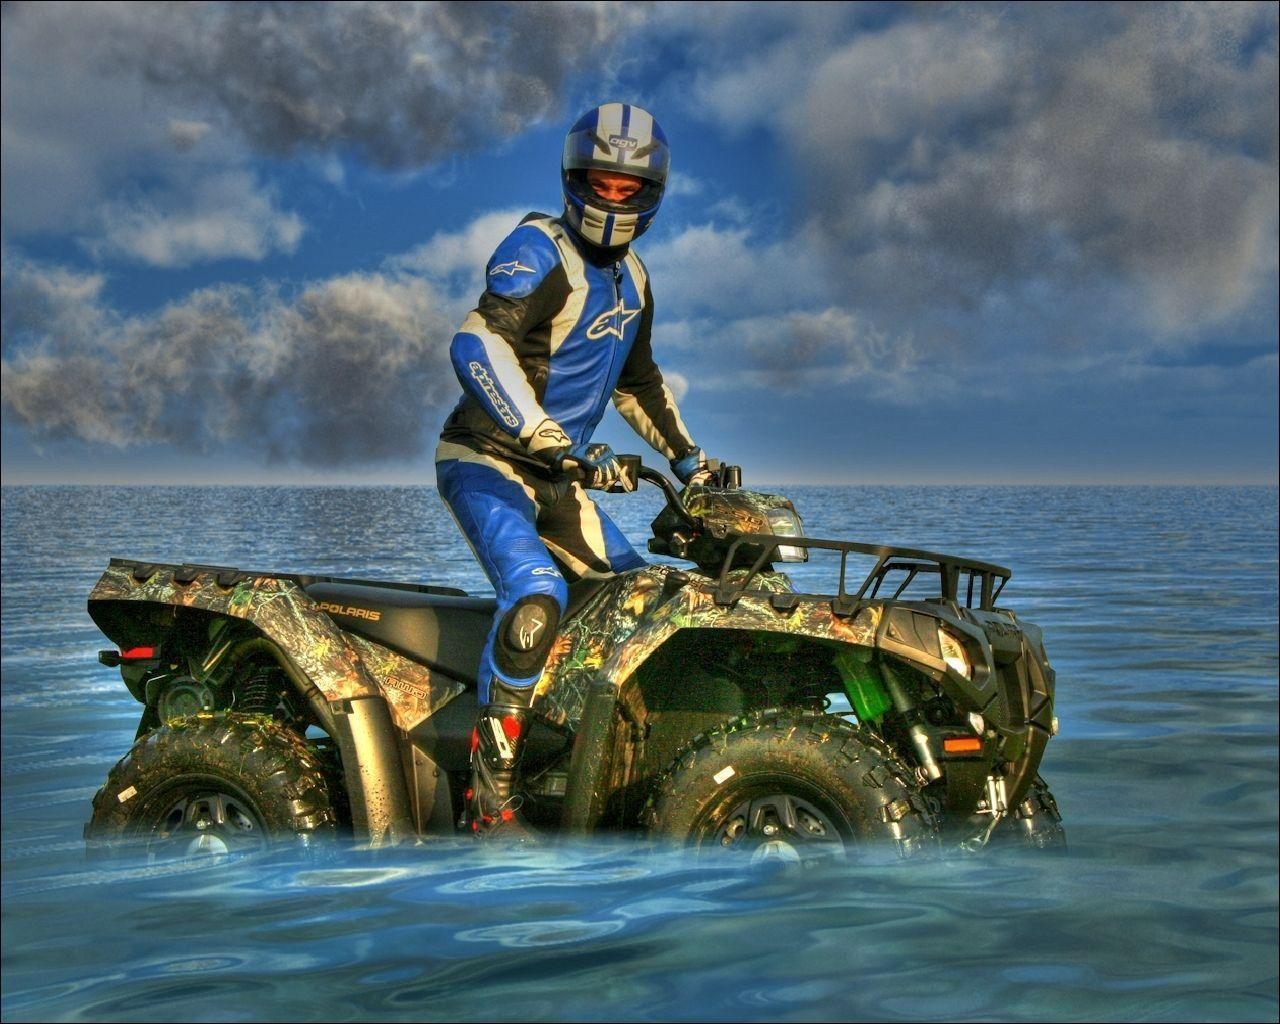 ATV free Wallpapers (13 photos) for your desktop, download pictures